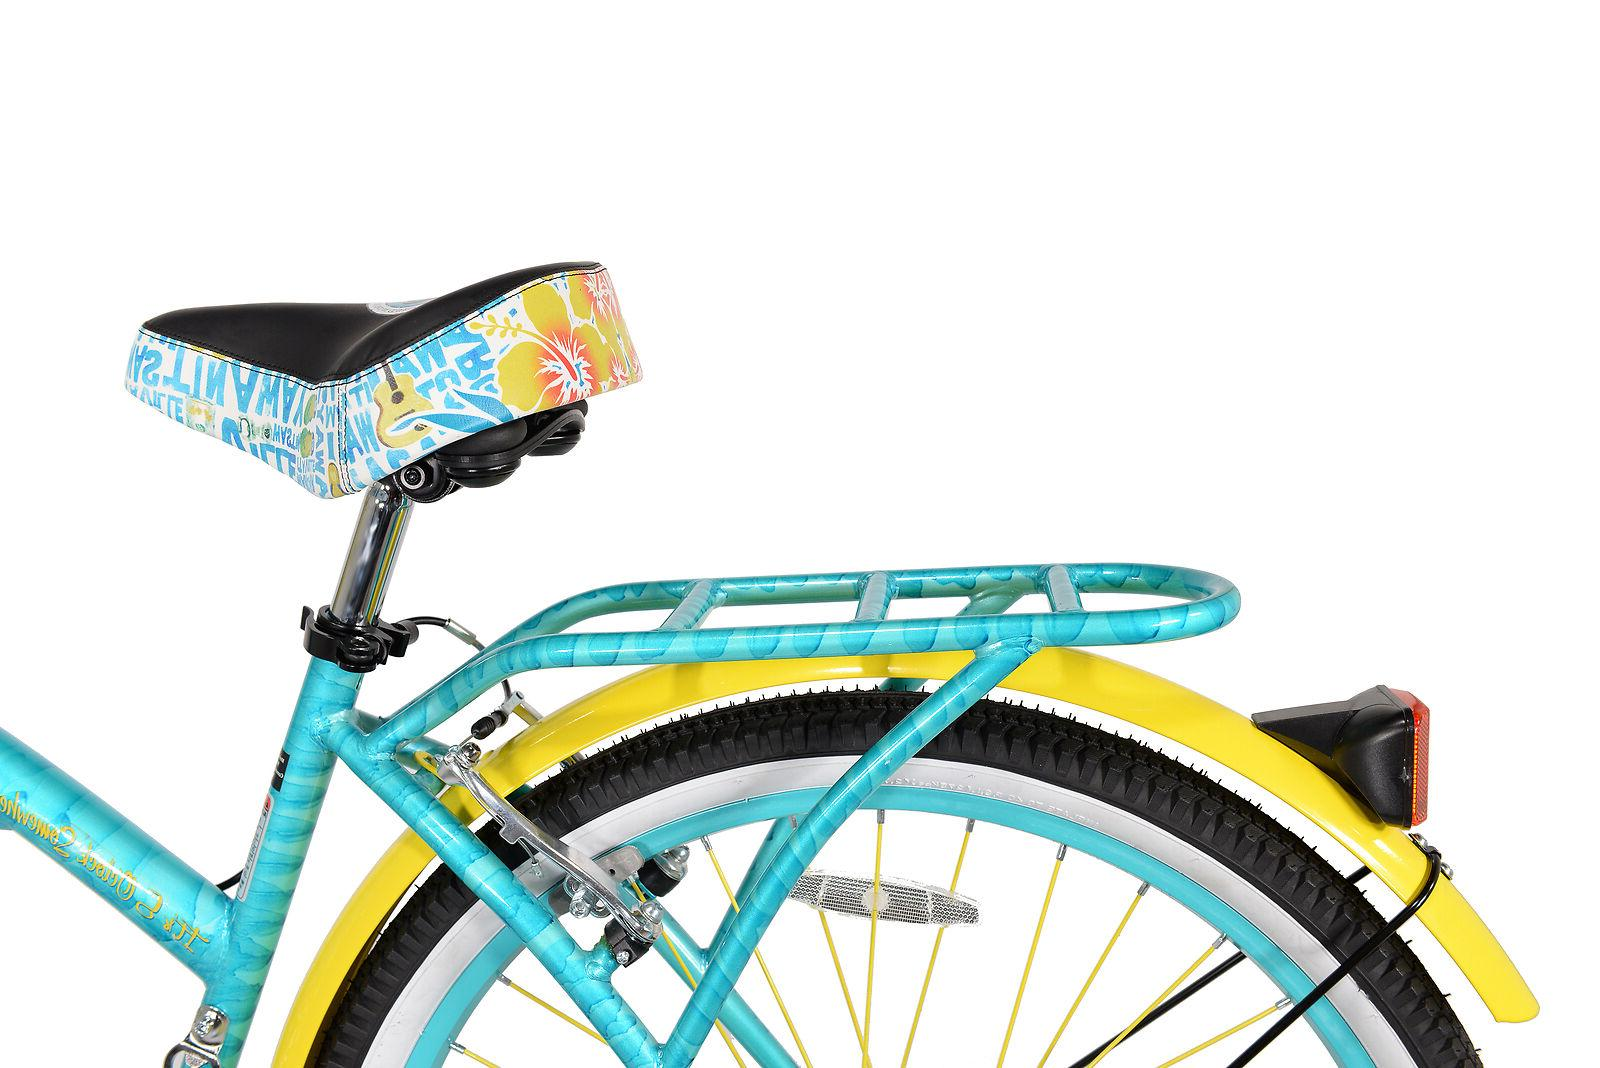 BCA Women's, Margaritaville Multi-Speed Cruiser Bike, Teal